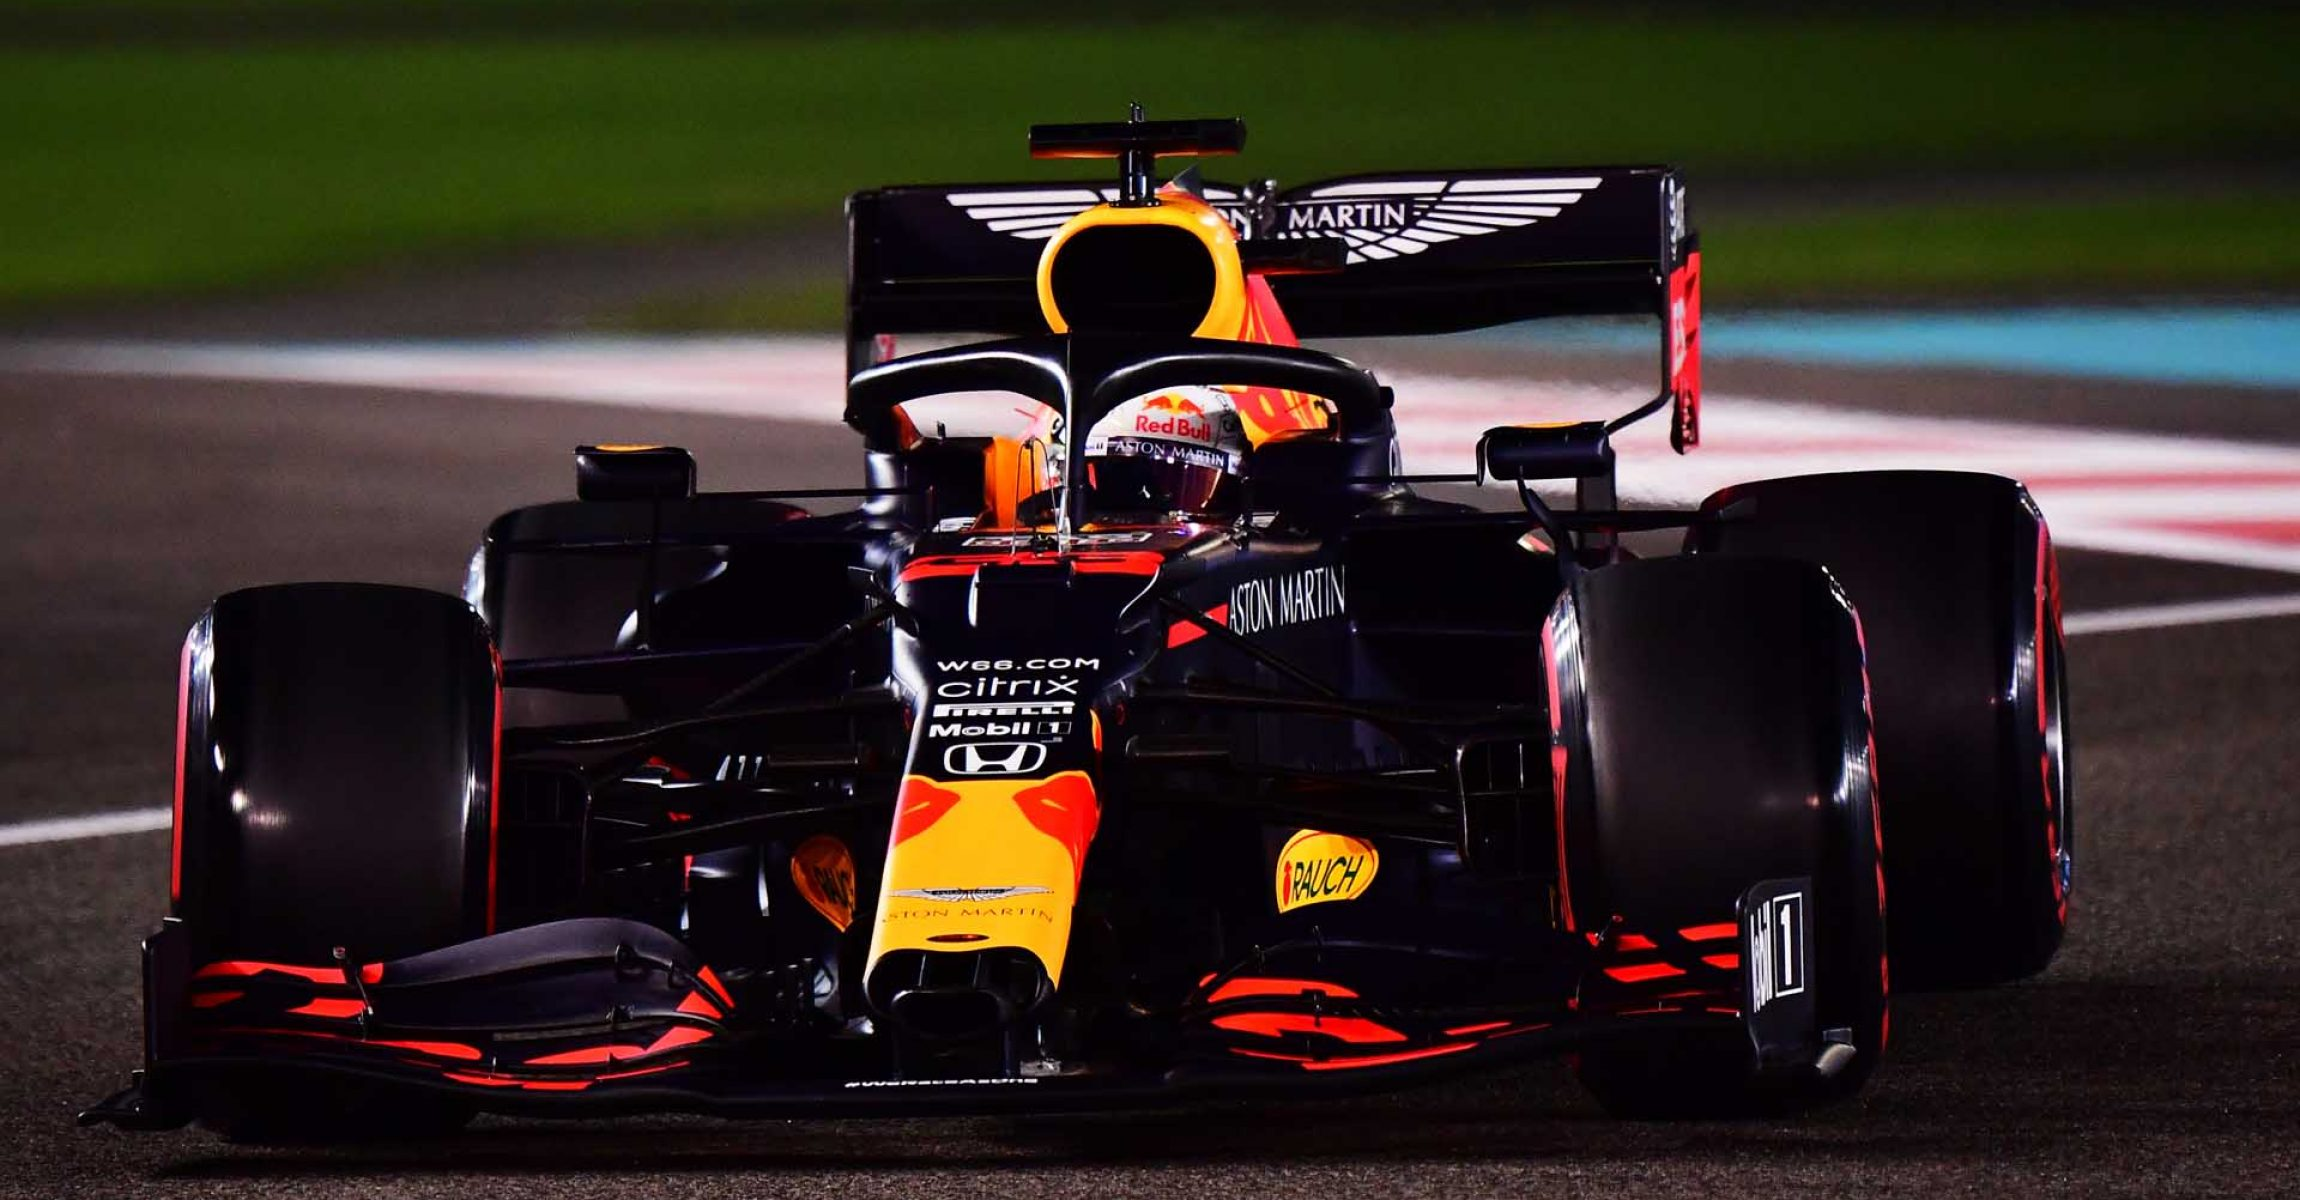 ABU DHABI, UNITED ARAB EMIRATES - DECEMBER 12: Max Verstappen of the Netherlands driving the (33) Aston Martin Red Bull Racing RB16 on track during qualifying ahead of the F1 Grand Prix of Abu Dhabi at Yas Marina Circuit on December 12, 2020 in Abu Dhabi, United Arab Emirates. (Photo by Giuseppe Cacace - Pool/Getty Images)